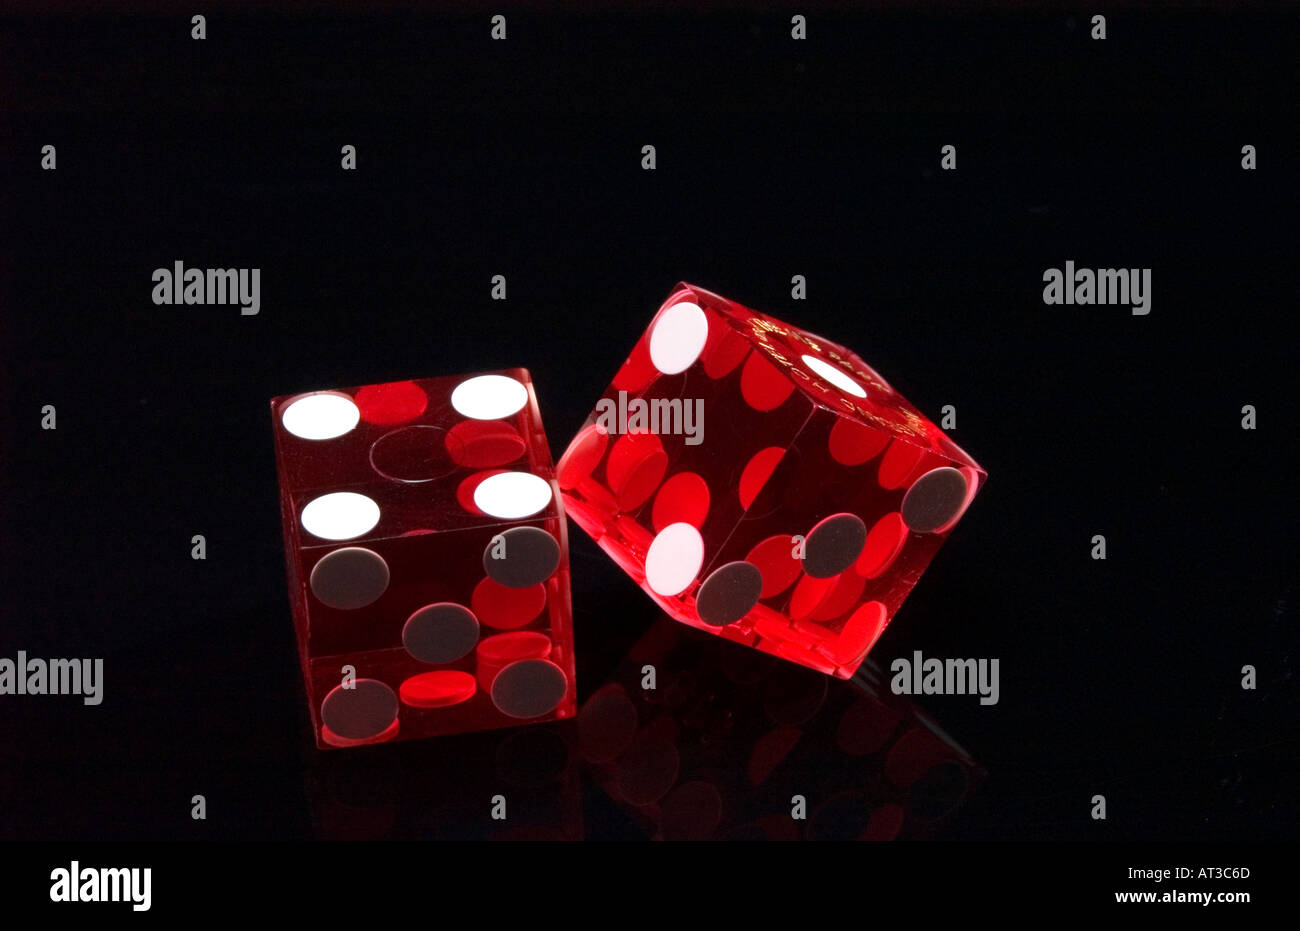 Close up of red casino dice on black reflective background - Stock Image